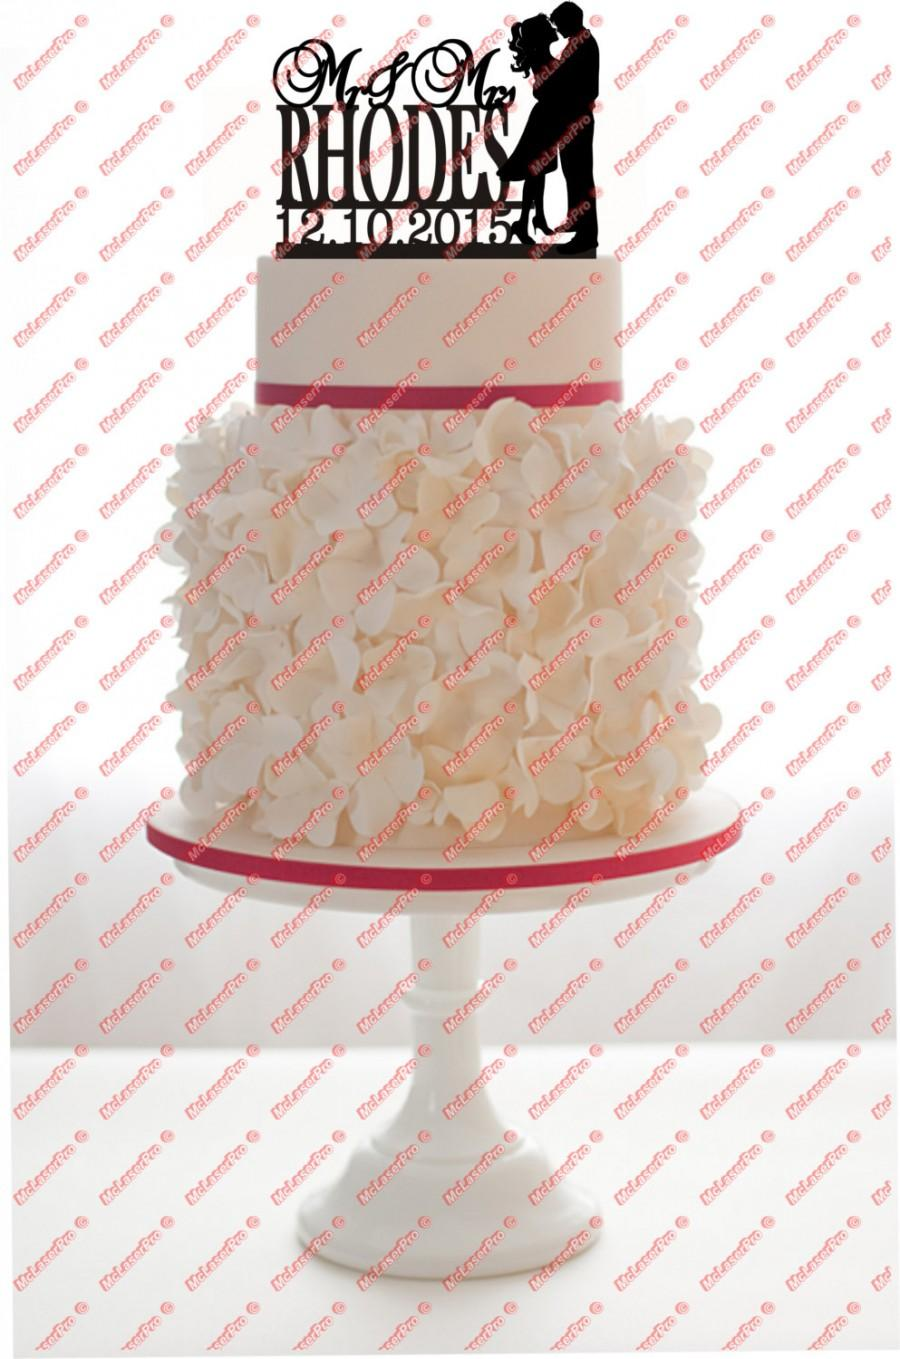 Свадьба - Custom Wedding Mr&Mrs Cake Topper Monogram Silhouette Personalized With Your Last Name, date, choice of color, FREE base for display